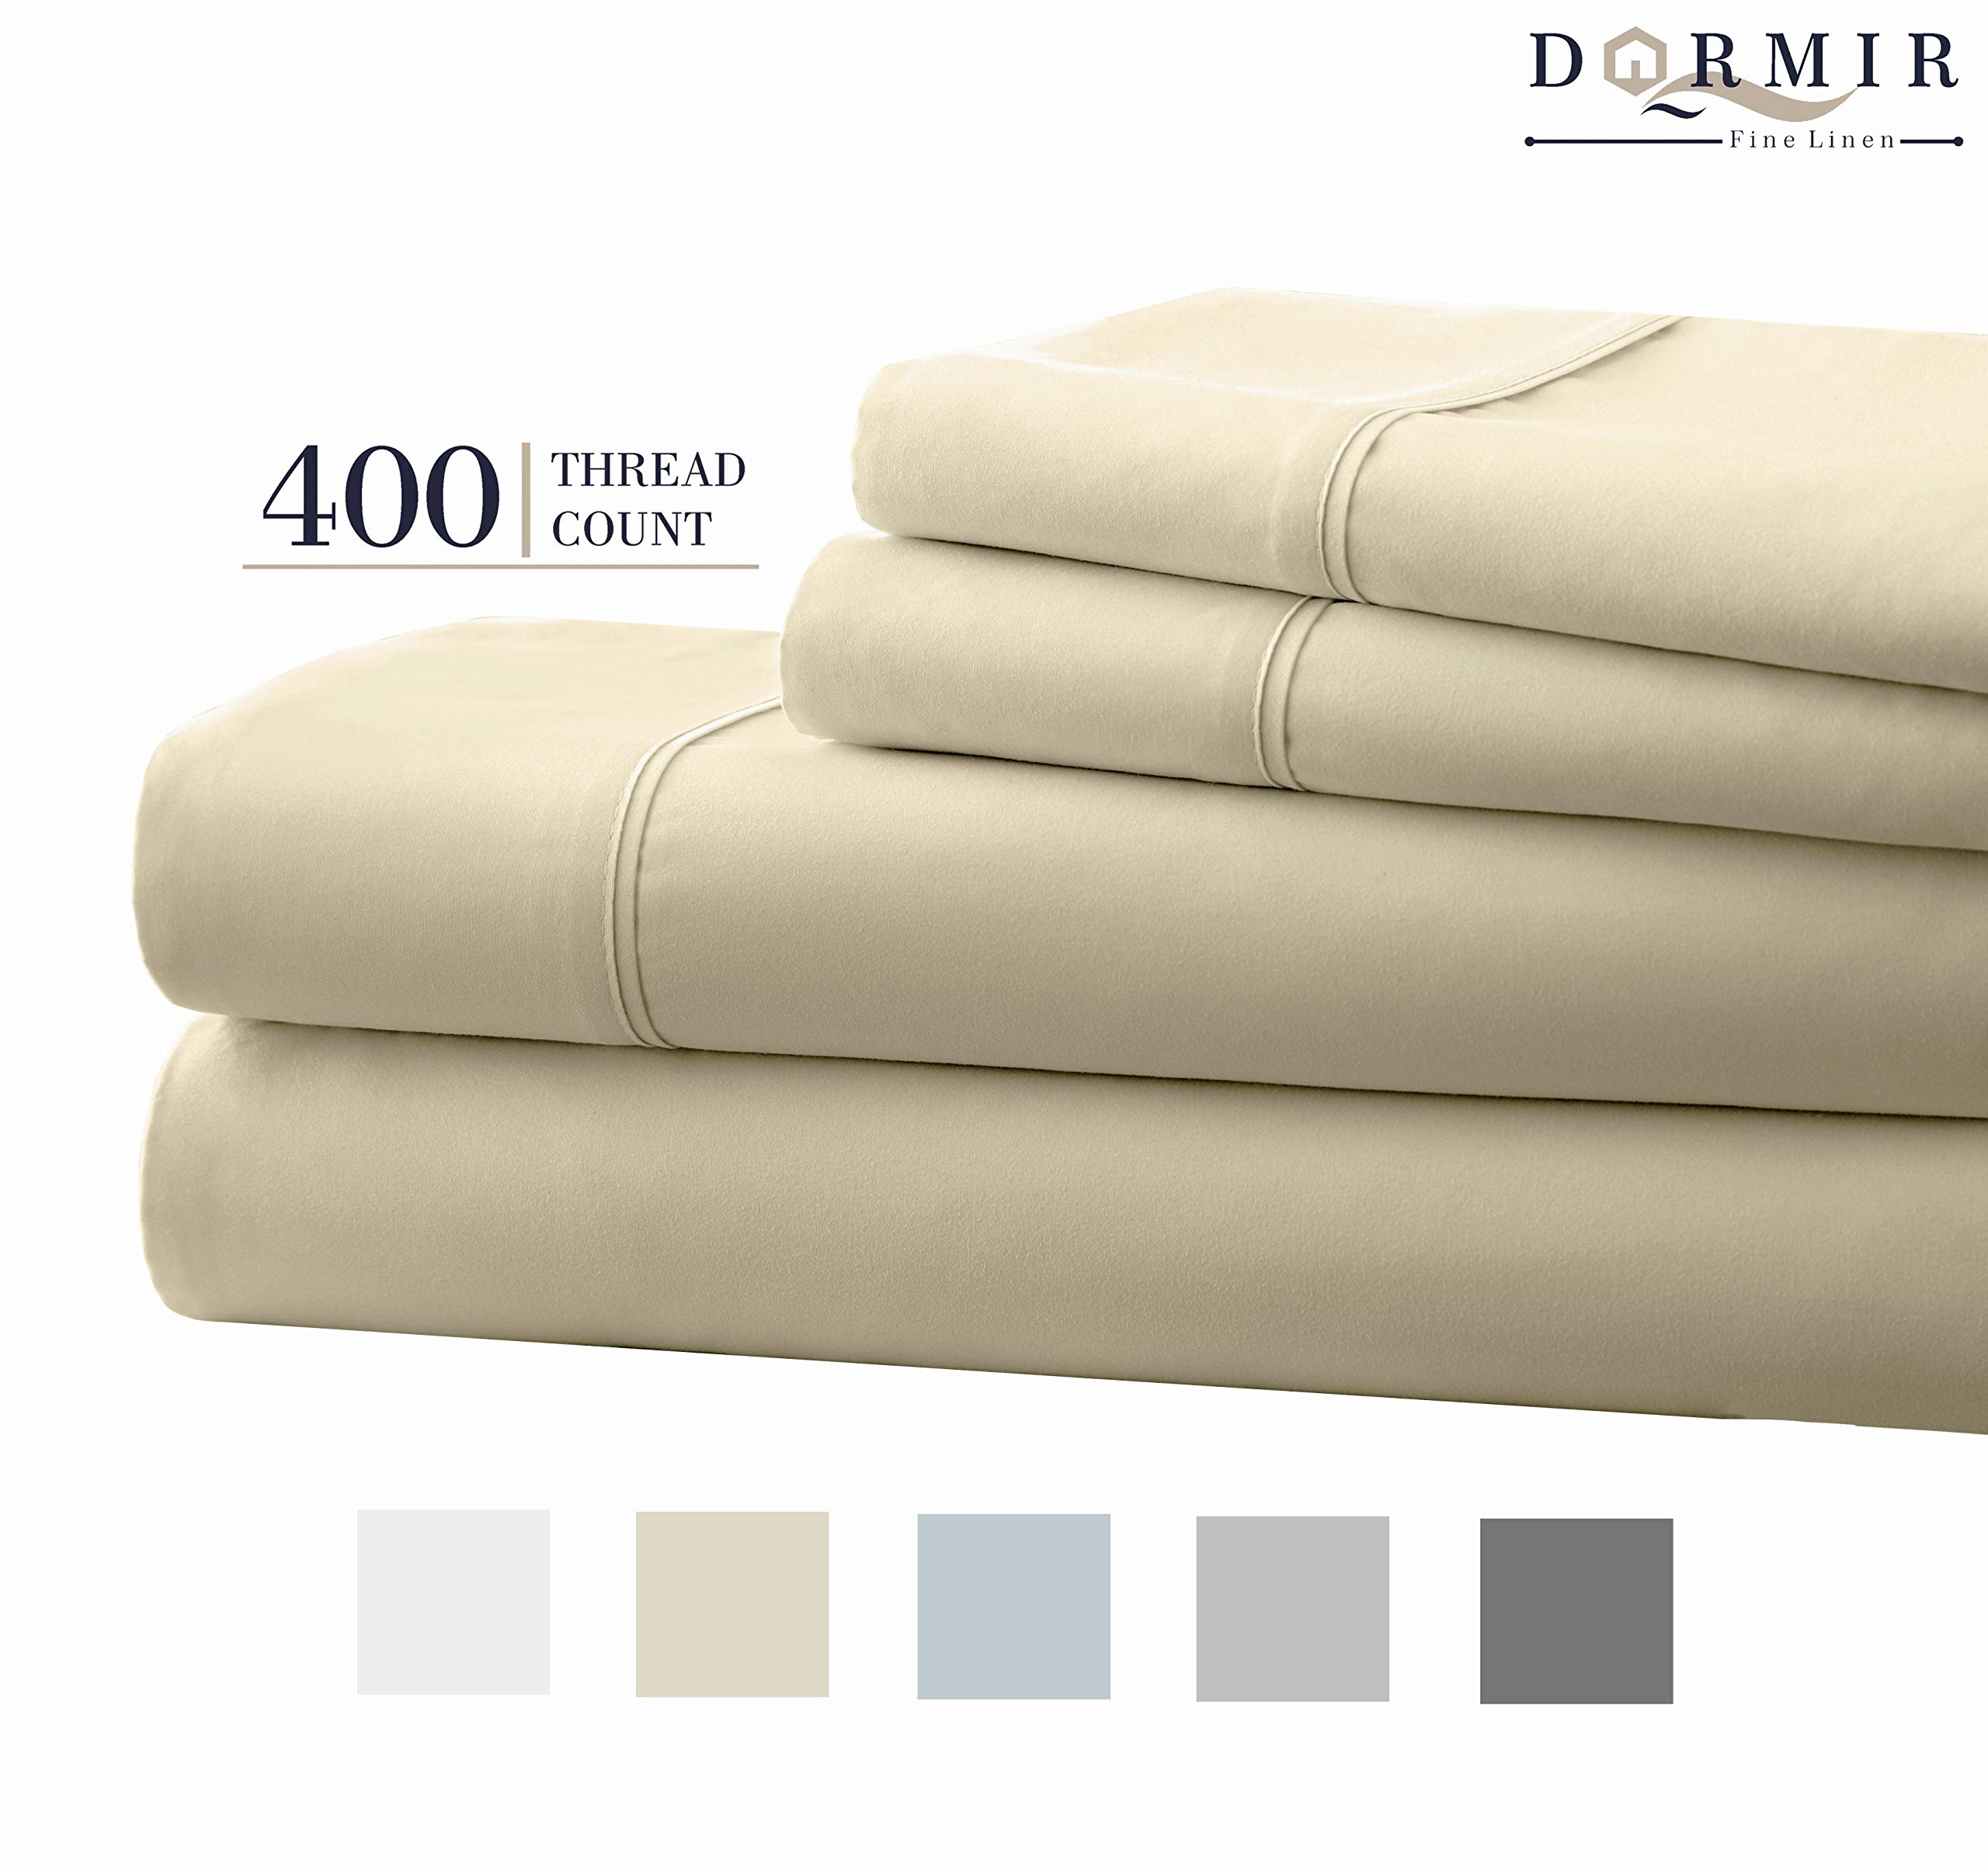 Dormir 400 Thread Count 100% Cotton Sheet Ivory King Sheets Set, 4-Piece Long-Staple Combed Cotton Best Sheets for Bed, Breathable, Soft & Silky Sateen Weave Fits Mattress Upto 18'' Deep Pocket by Dormir